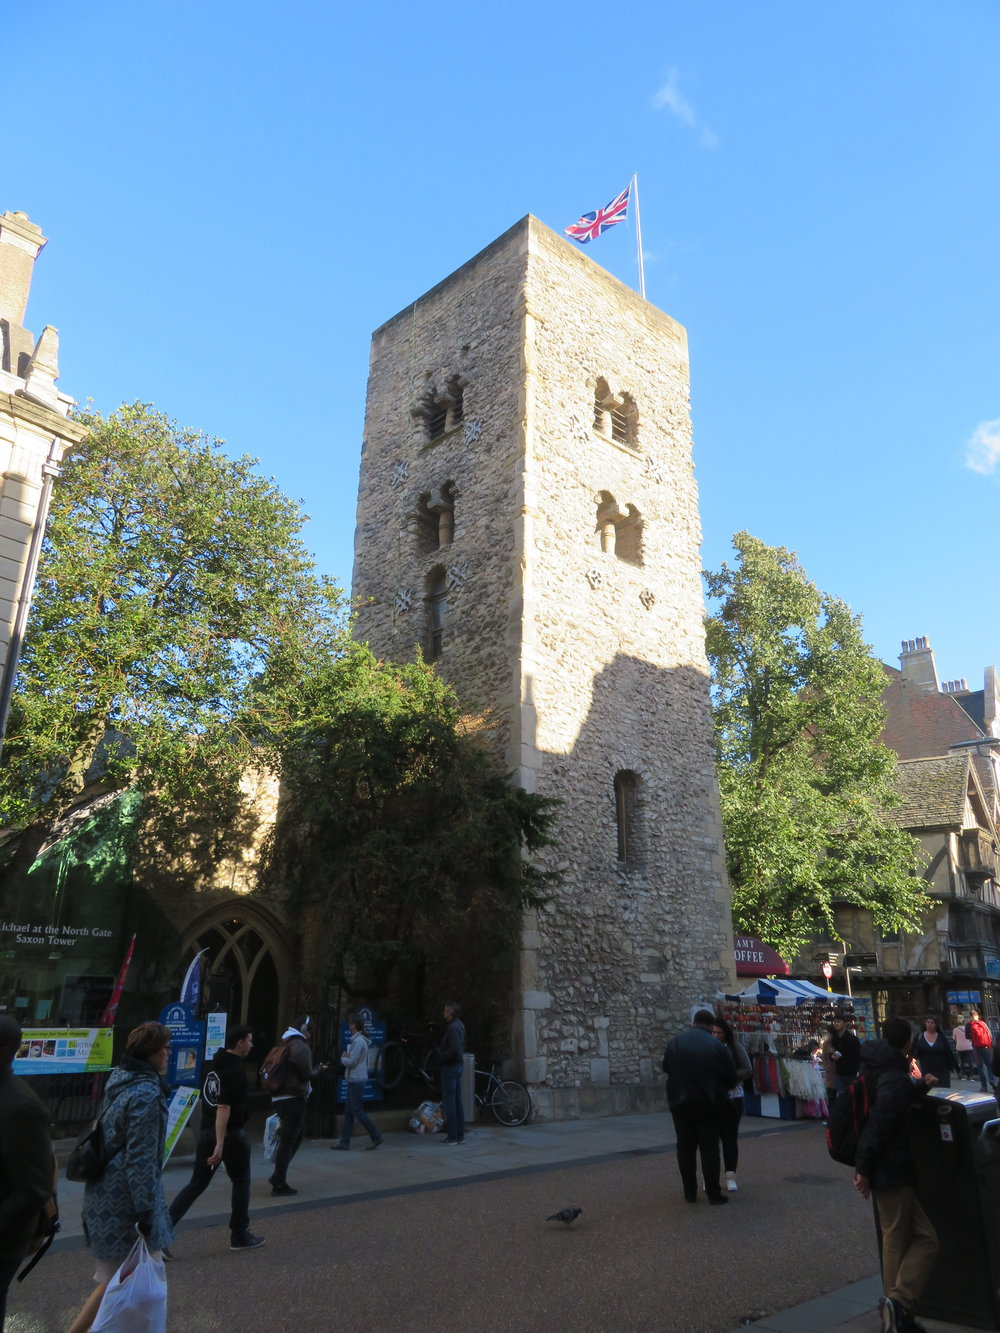 The Saxon Tower - St. Michael at the North Gate